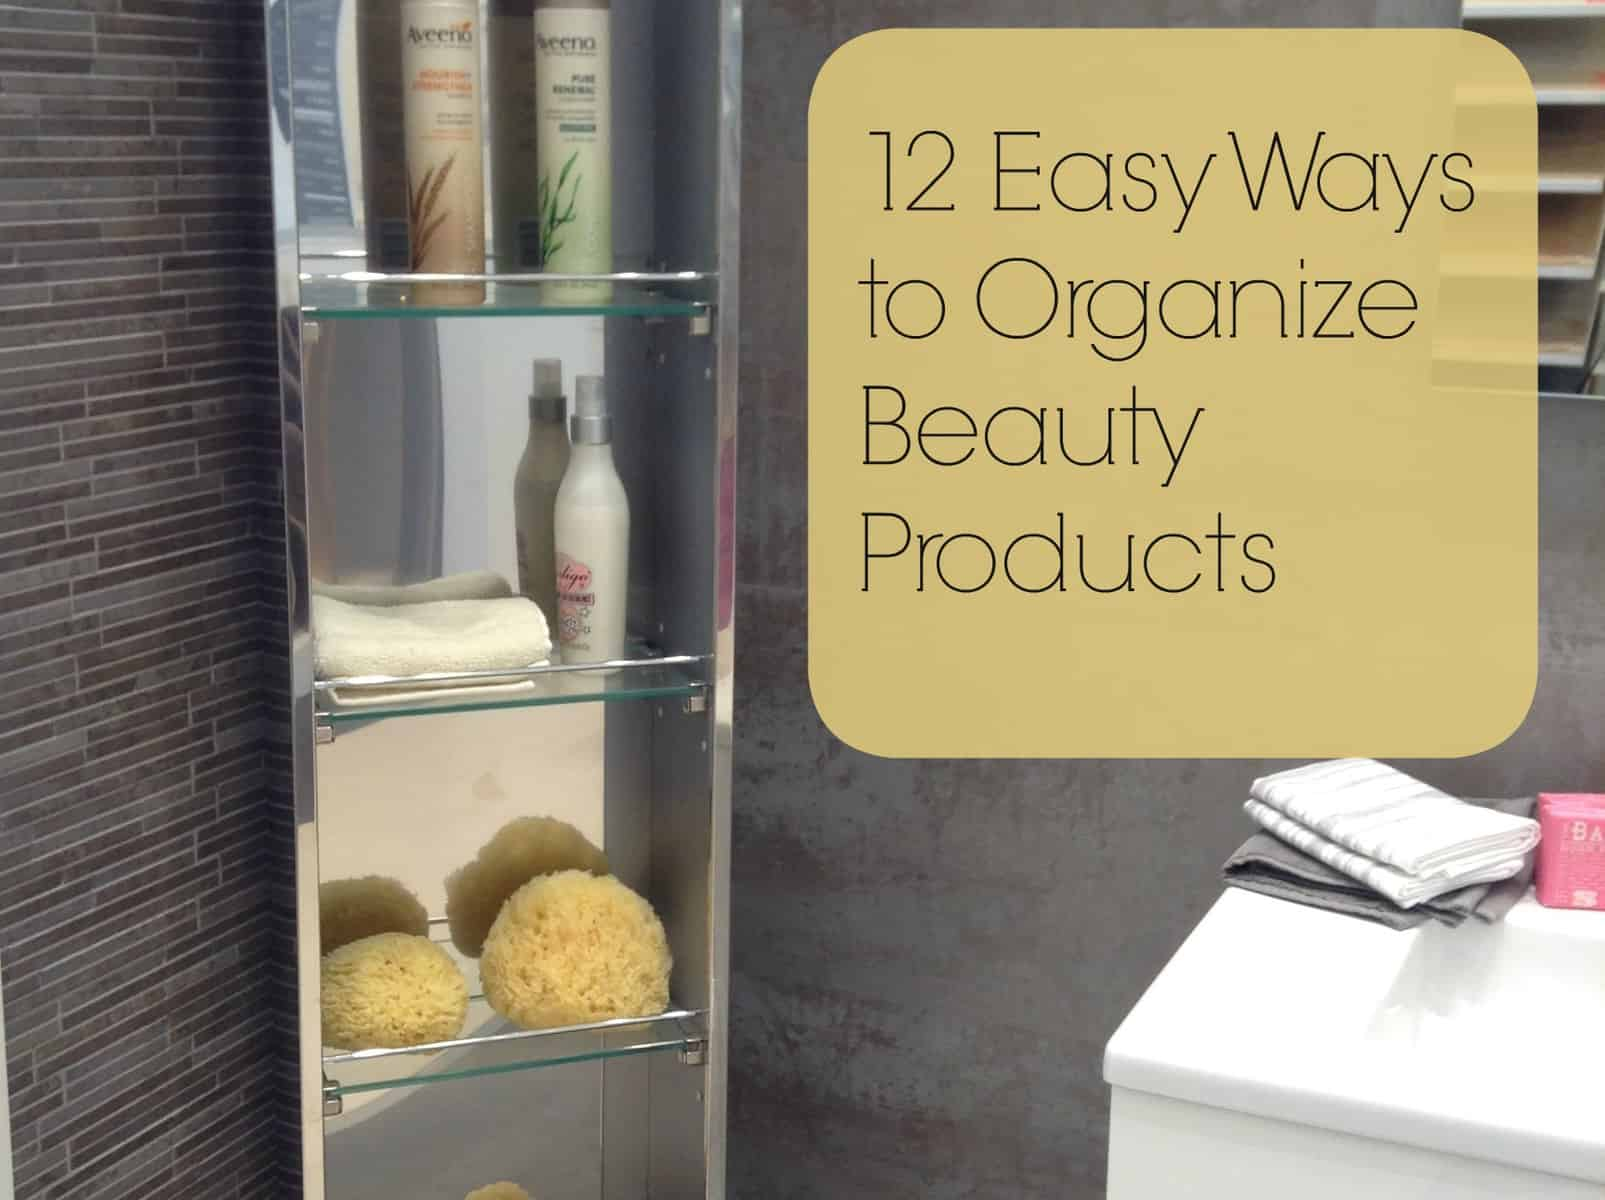 12 Easy Ways To Organize Beauty Products In The Bathroom Heartwork Organizing Tips For